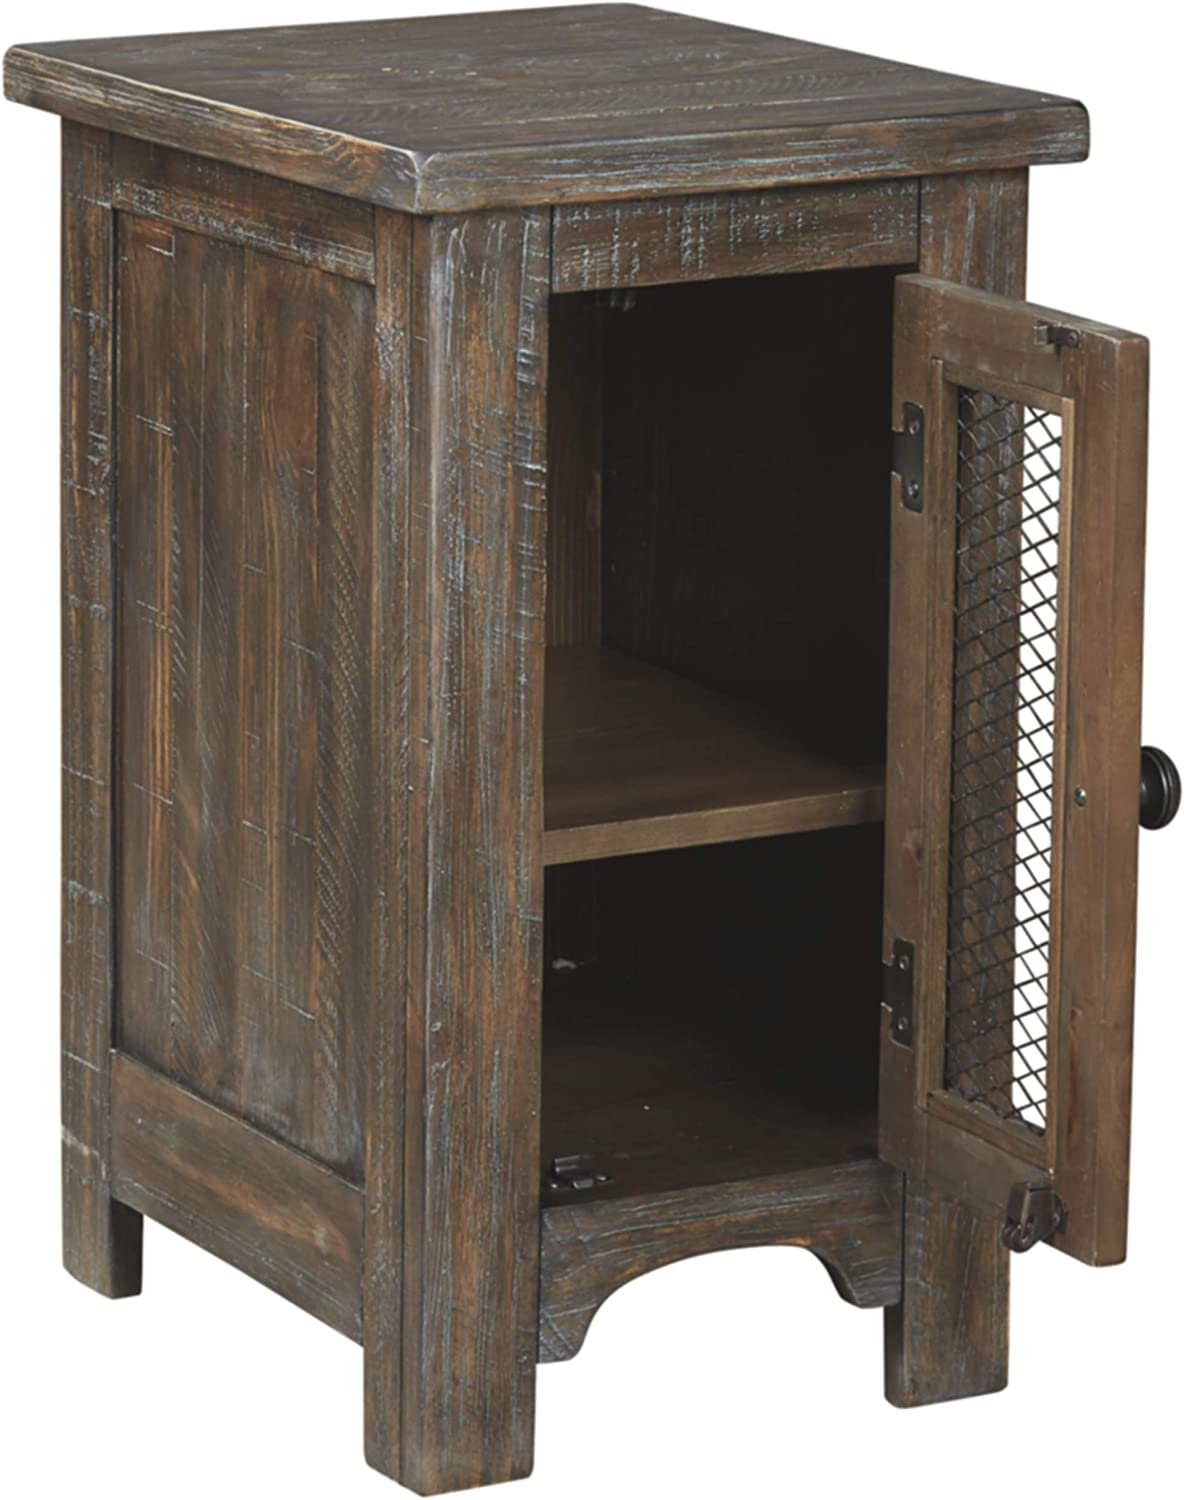 Signature Design by Ashley - Danell Ridge Chairside End Table w/ Fixed Shelf, Brown